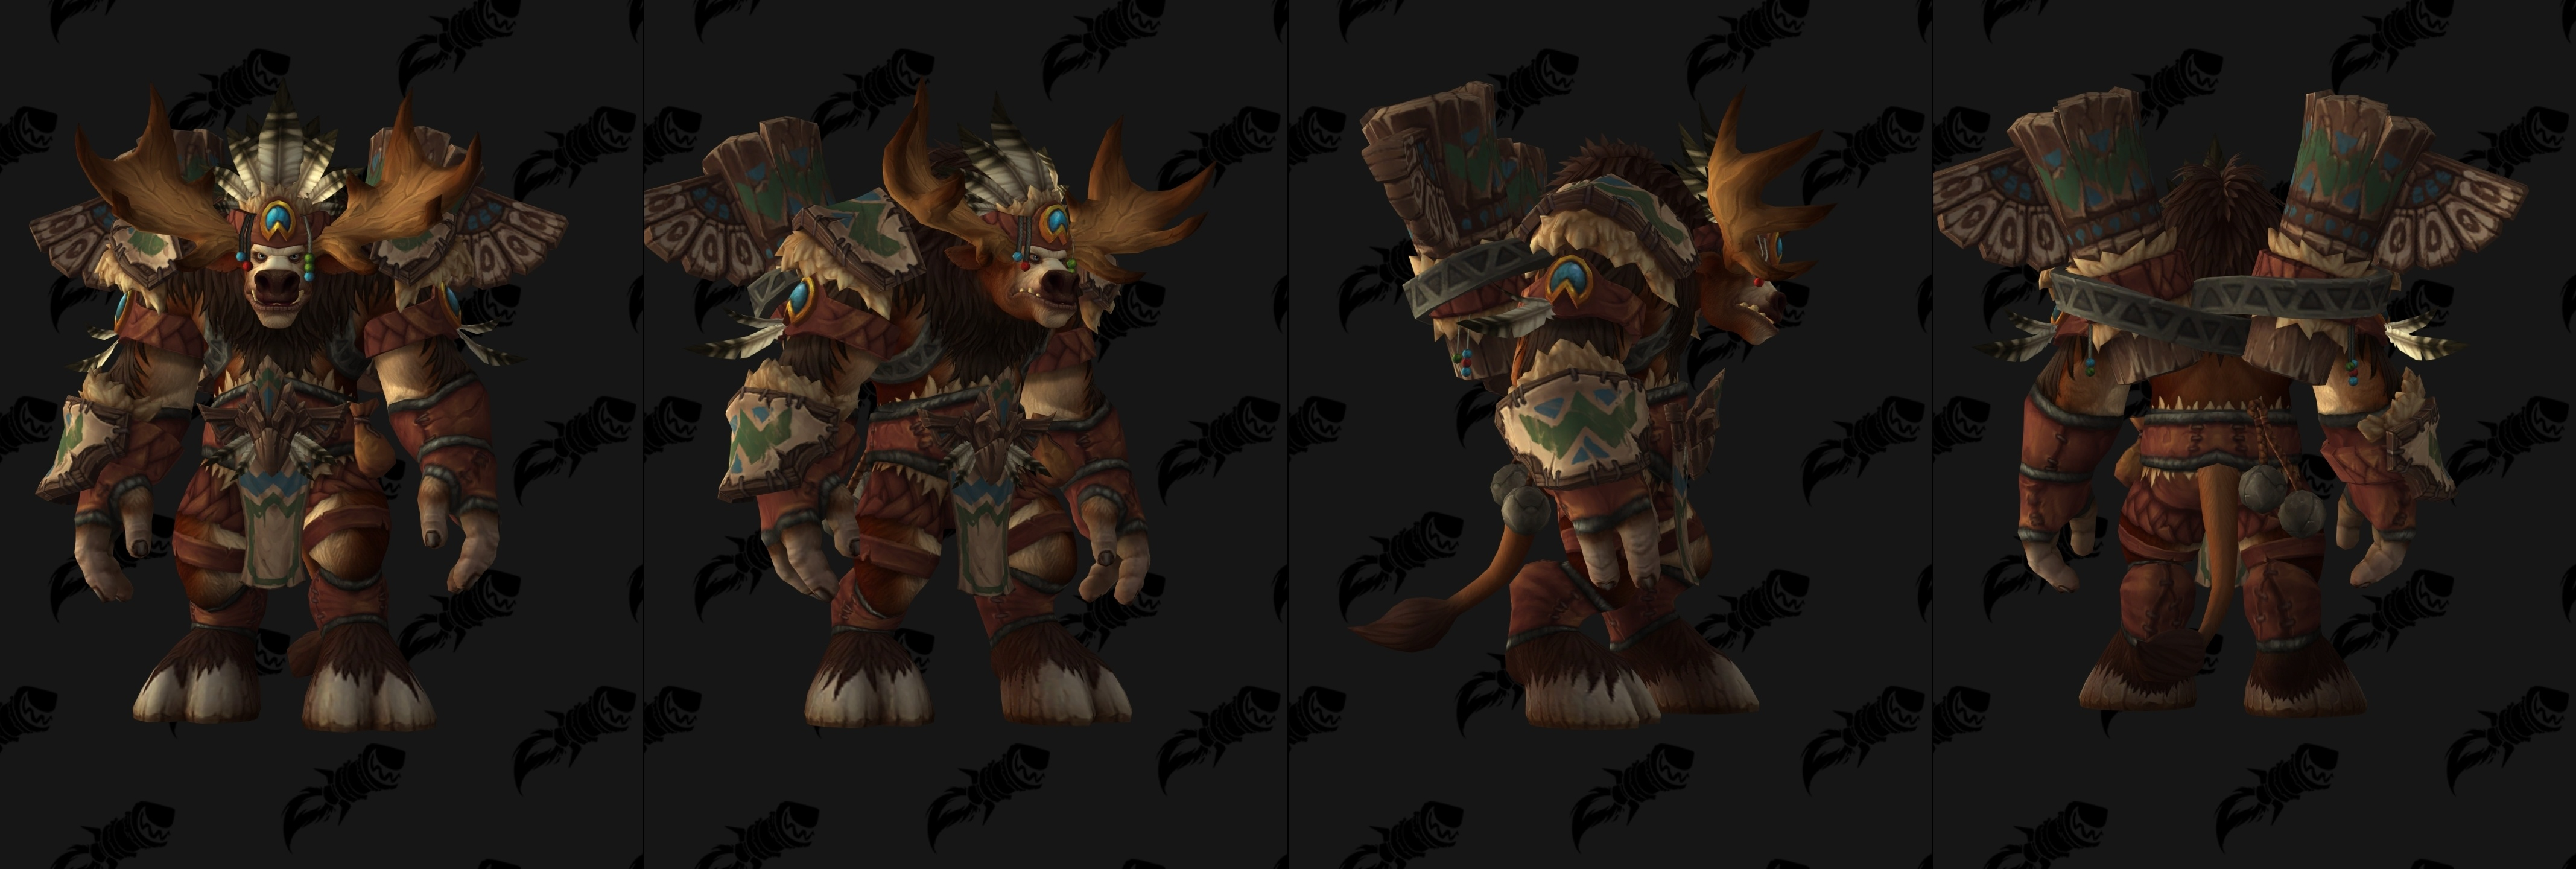 highmountain-taurens-allied-race-wow